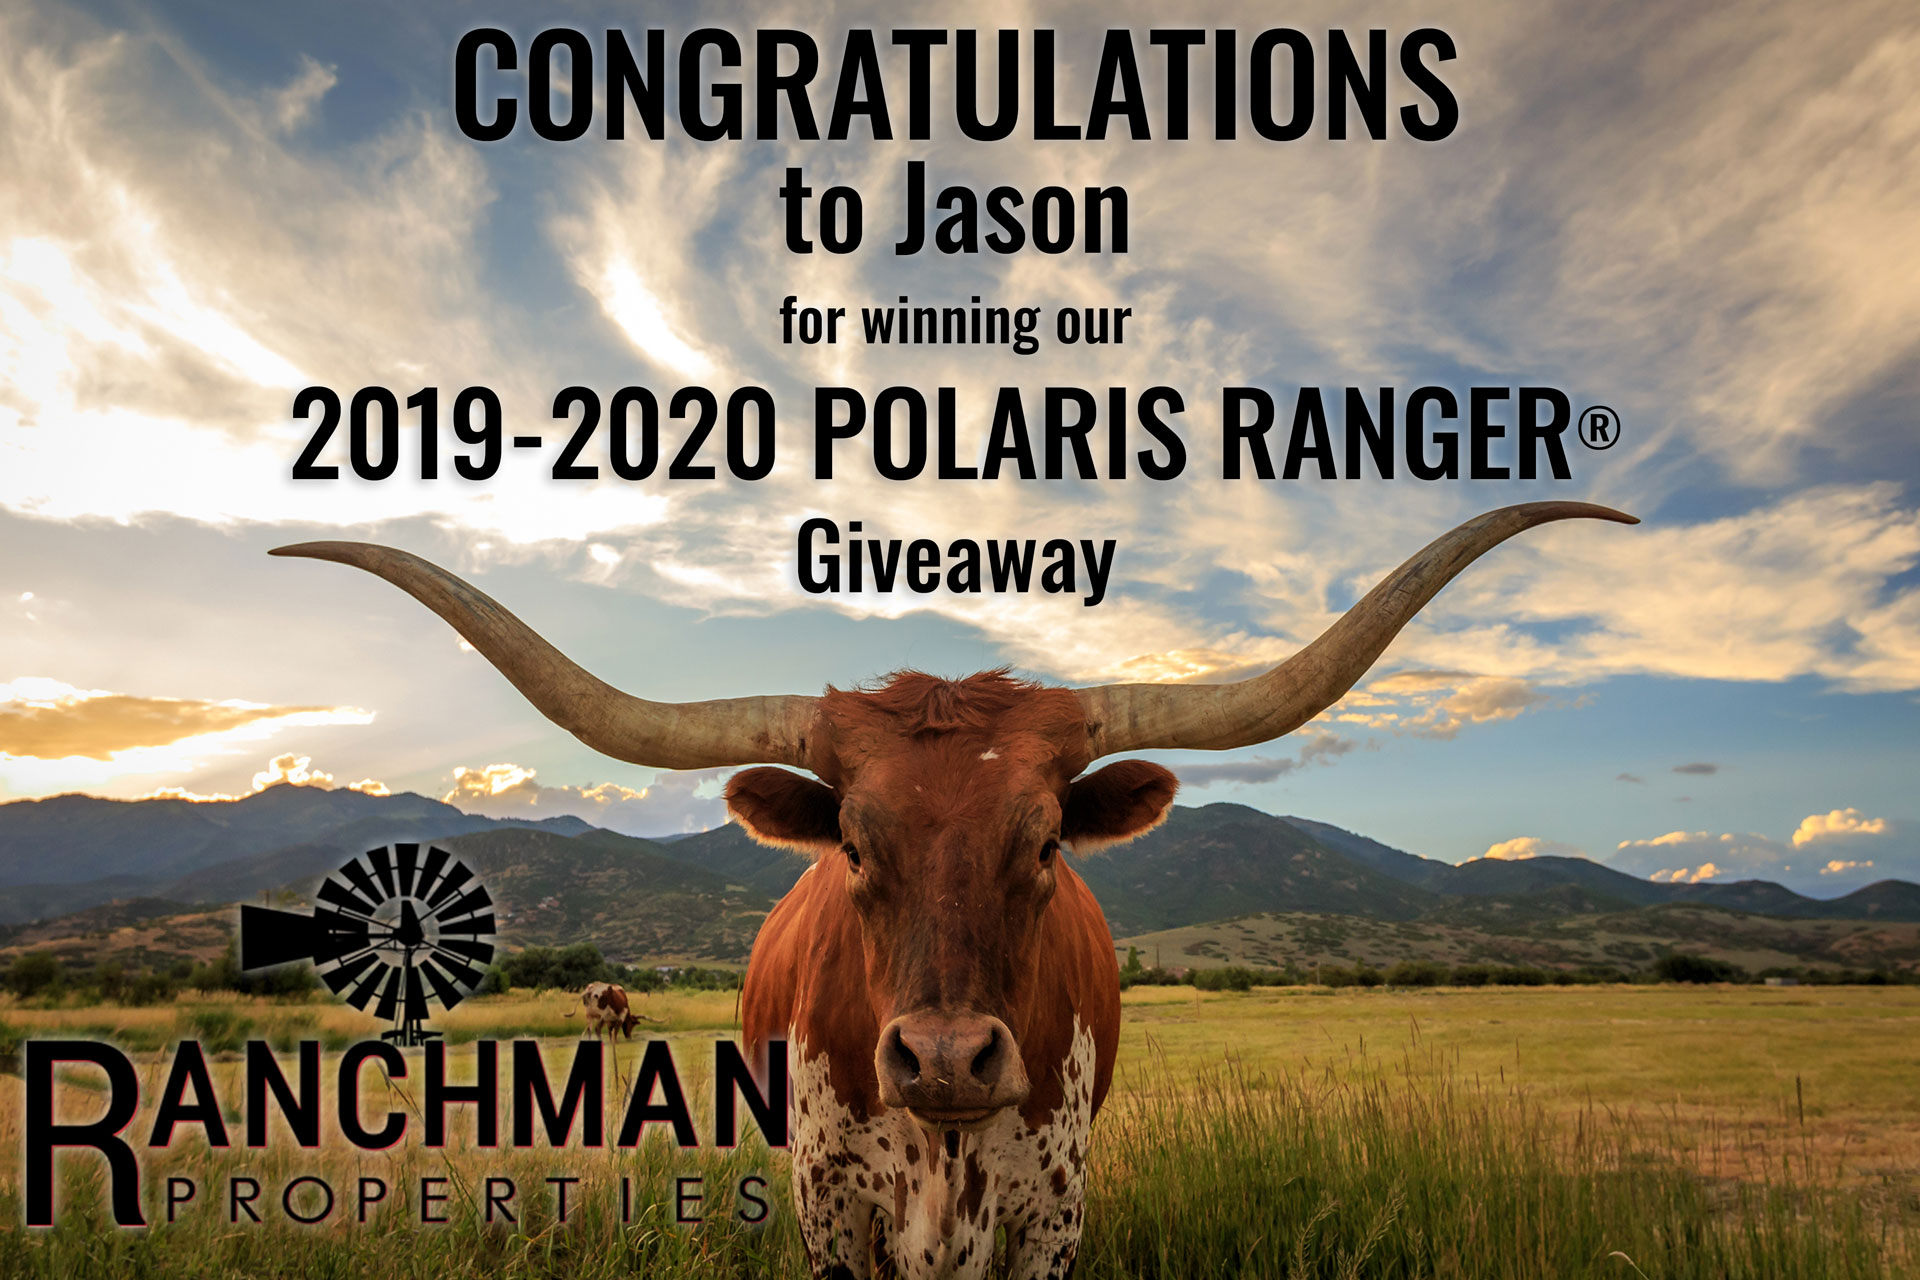 Ranchman_Properties_Congratulates_Jason